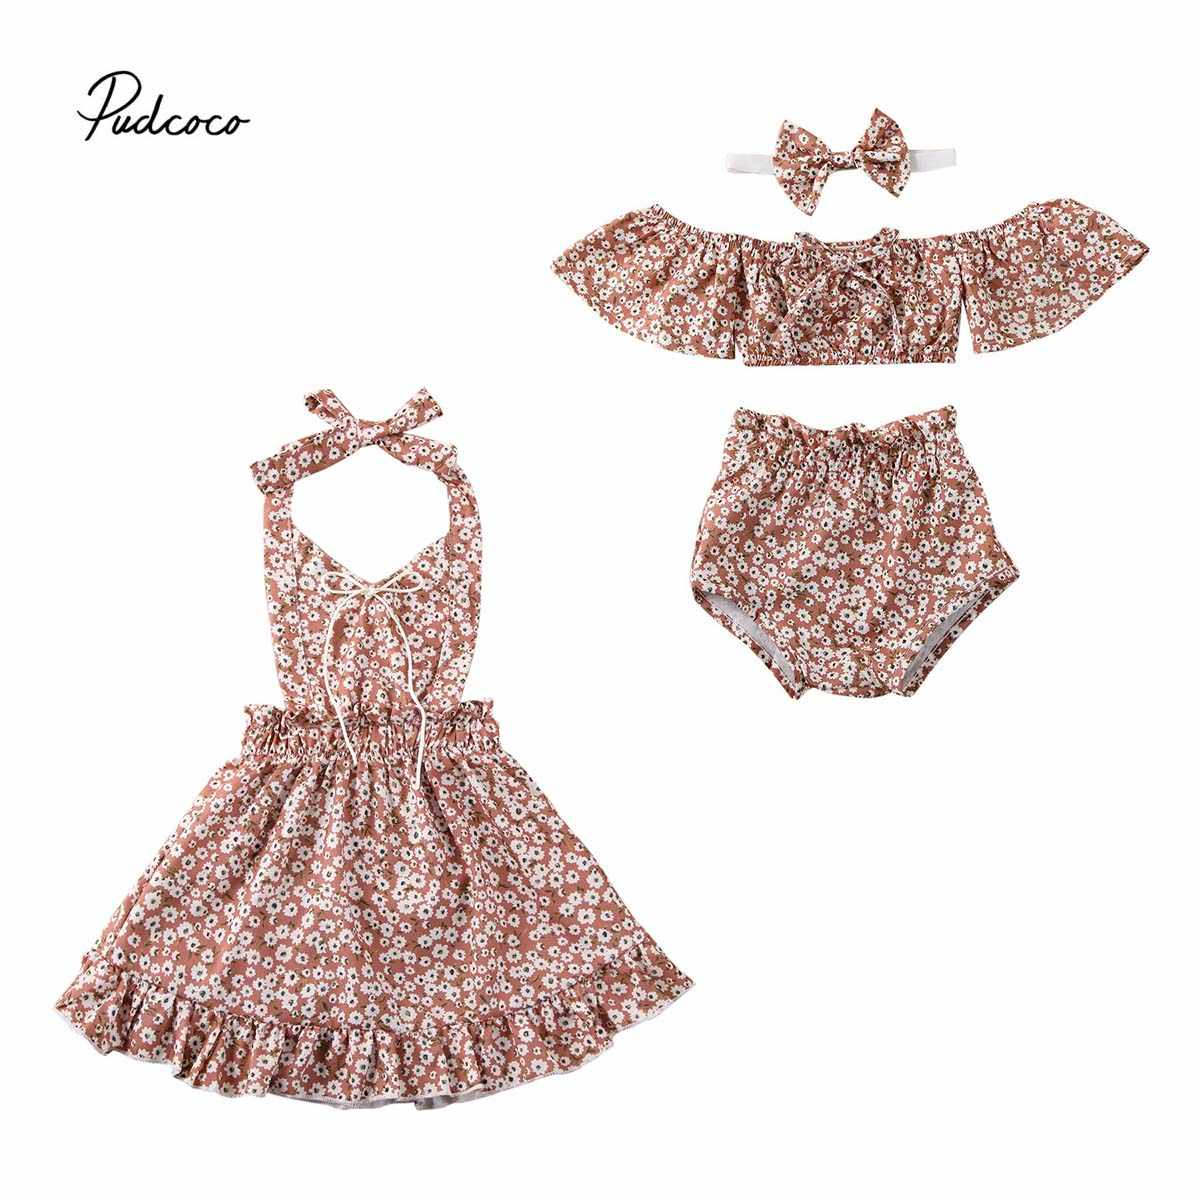 2020 Baby Summer Clothing Newborn Kids Baby Girl Floral Shorts Outfits Set Clothes Sundress Beach Dresses Sister Matching Outfit